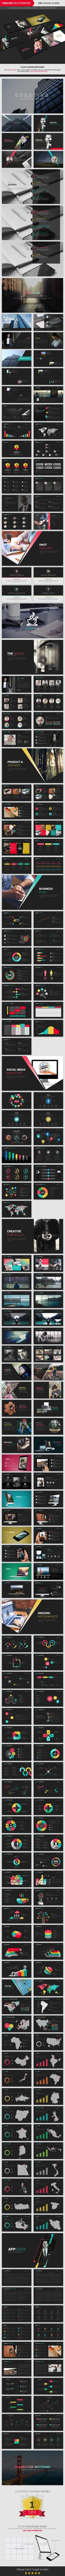 Buy Creative PowerPoint Template by pptx on GraphicRiver. Creative Presentation Creative Design PowerPoint Template – It offers unique and relevant slide templates that are ca. Creative Powerpoint Templates, Powerpoint Presentation Templates, Brochure Design, Branding Design, Cv Web, Bussiness Card, Presentation Layout, Slide Design, Grafik Design